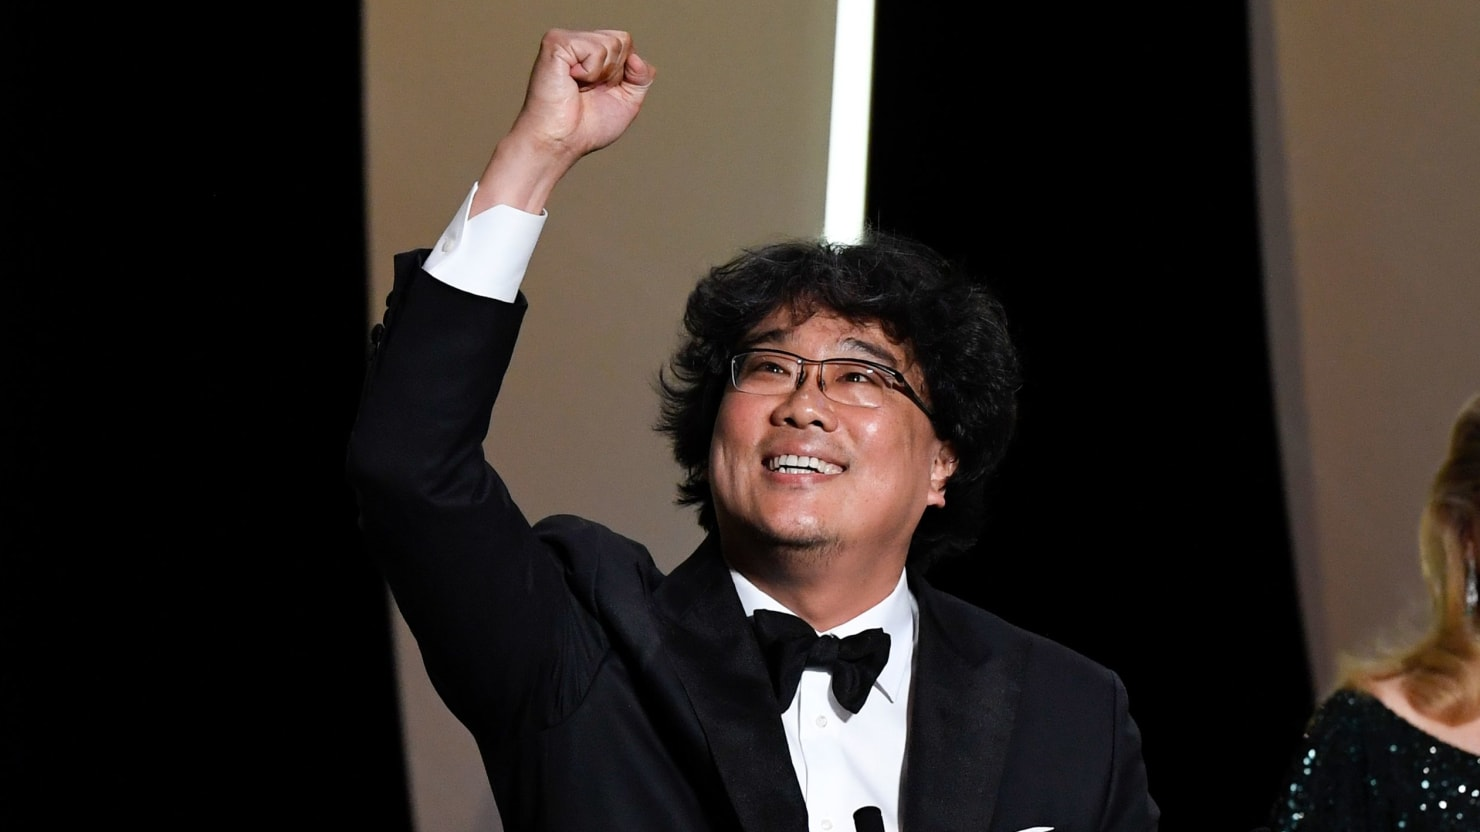 South Korean Film 'Parasite' Wins Top Prize at Cannes Film Festival